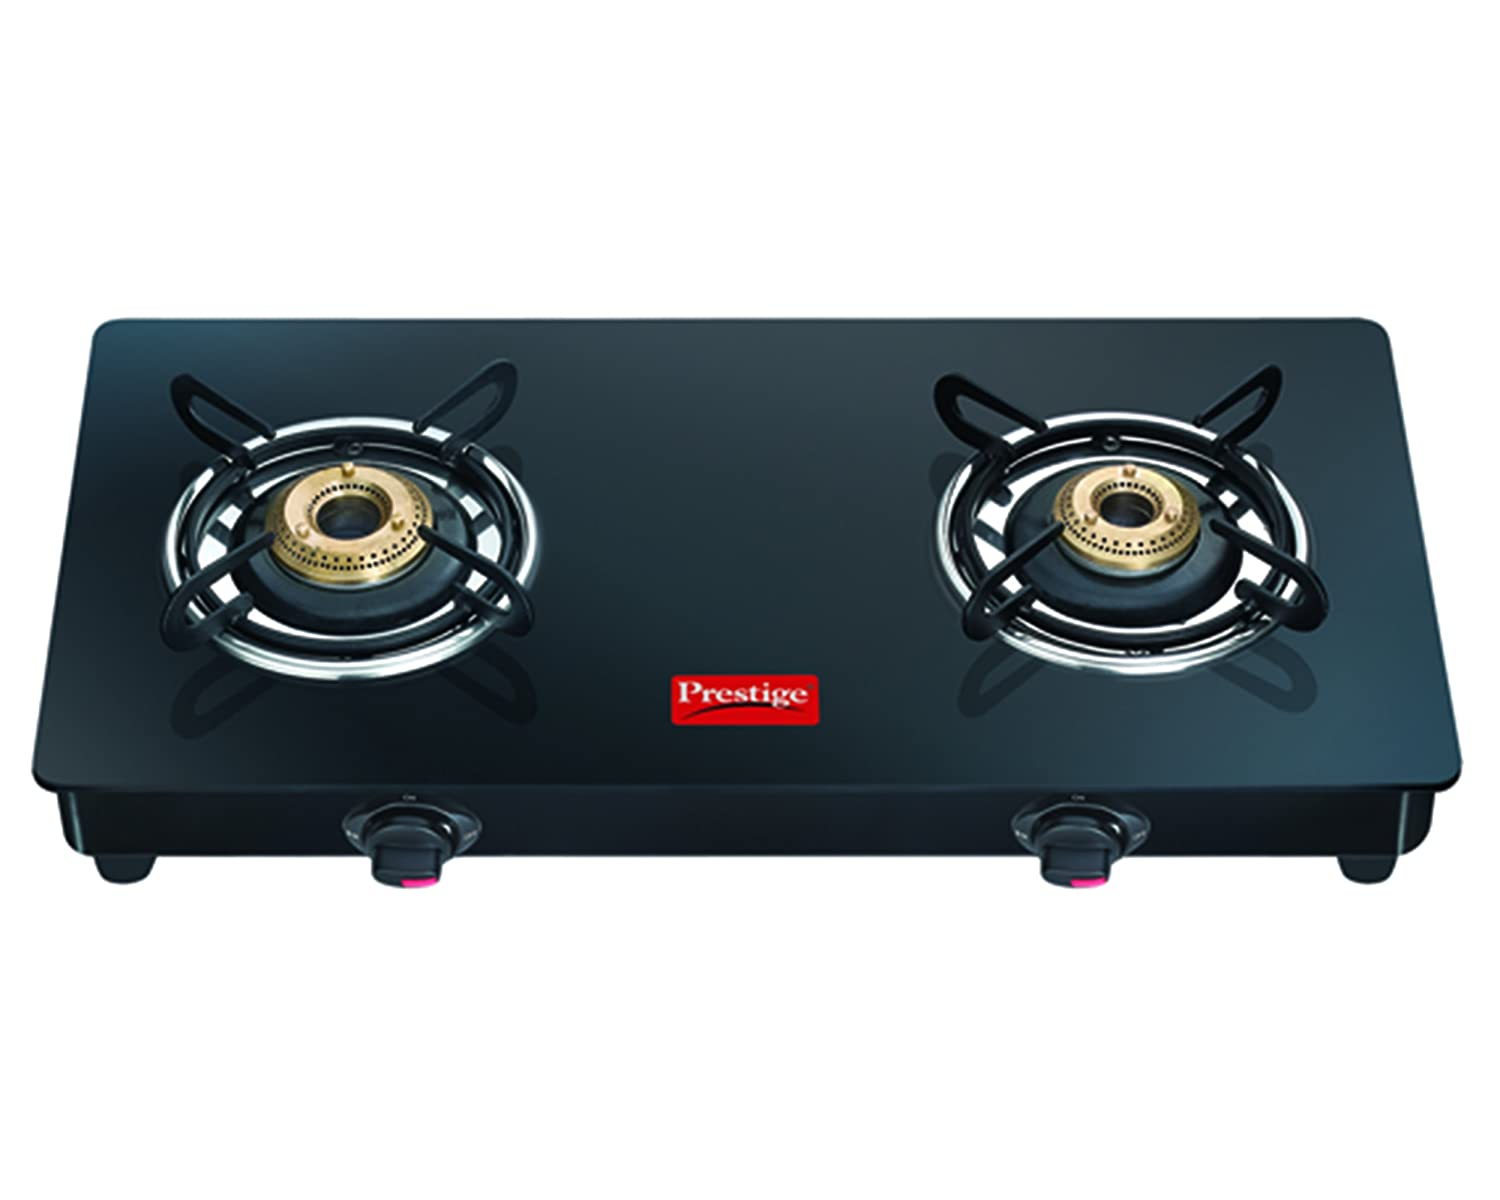 restige Marvel Glass 2 Burner Gas Stove